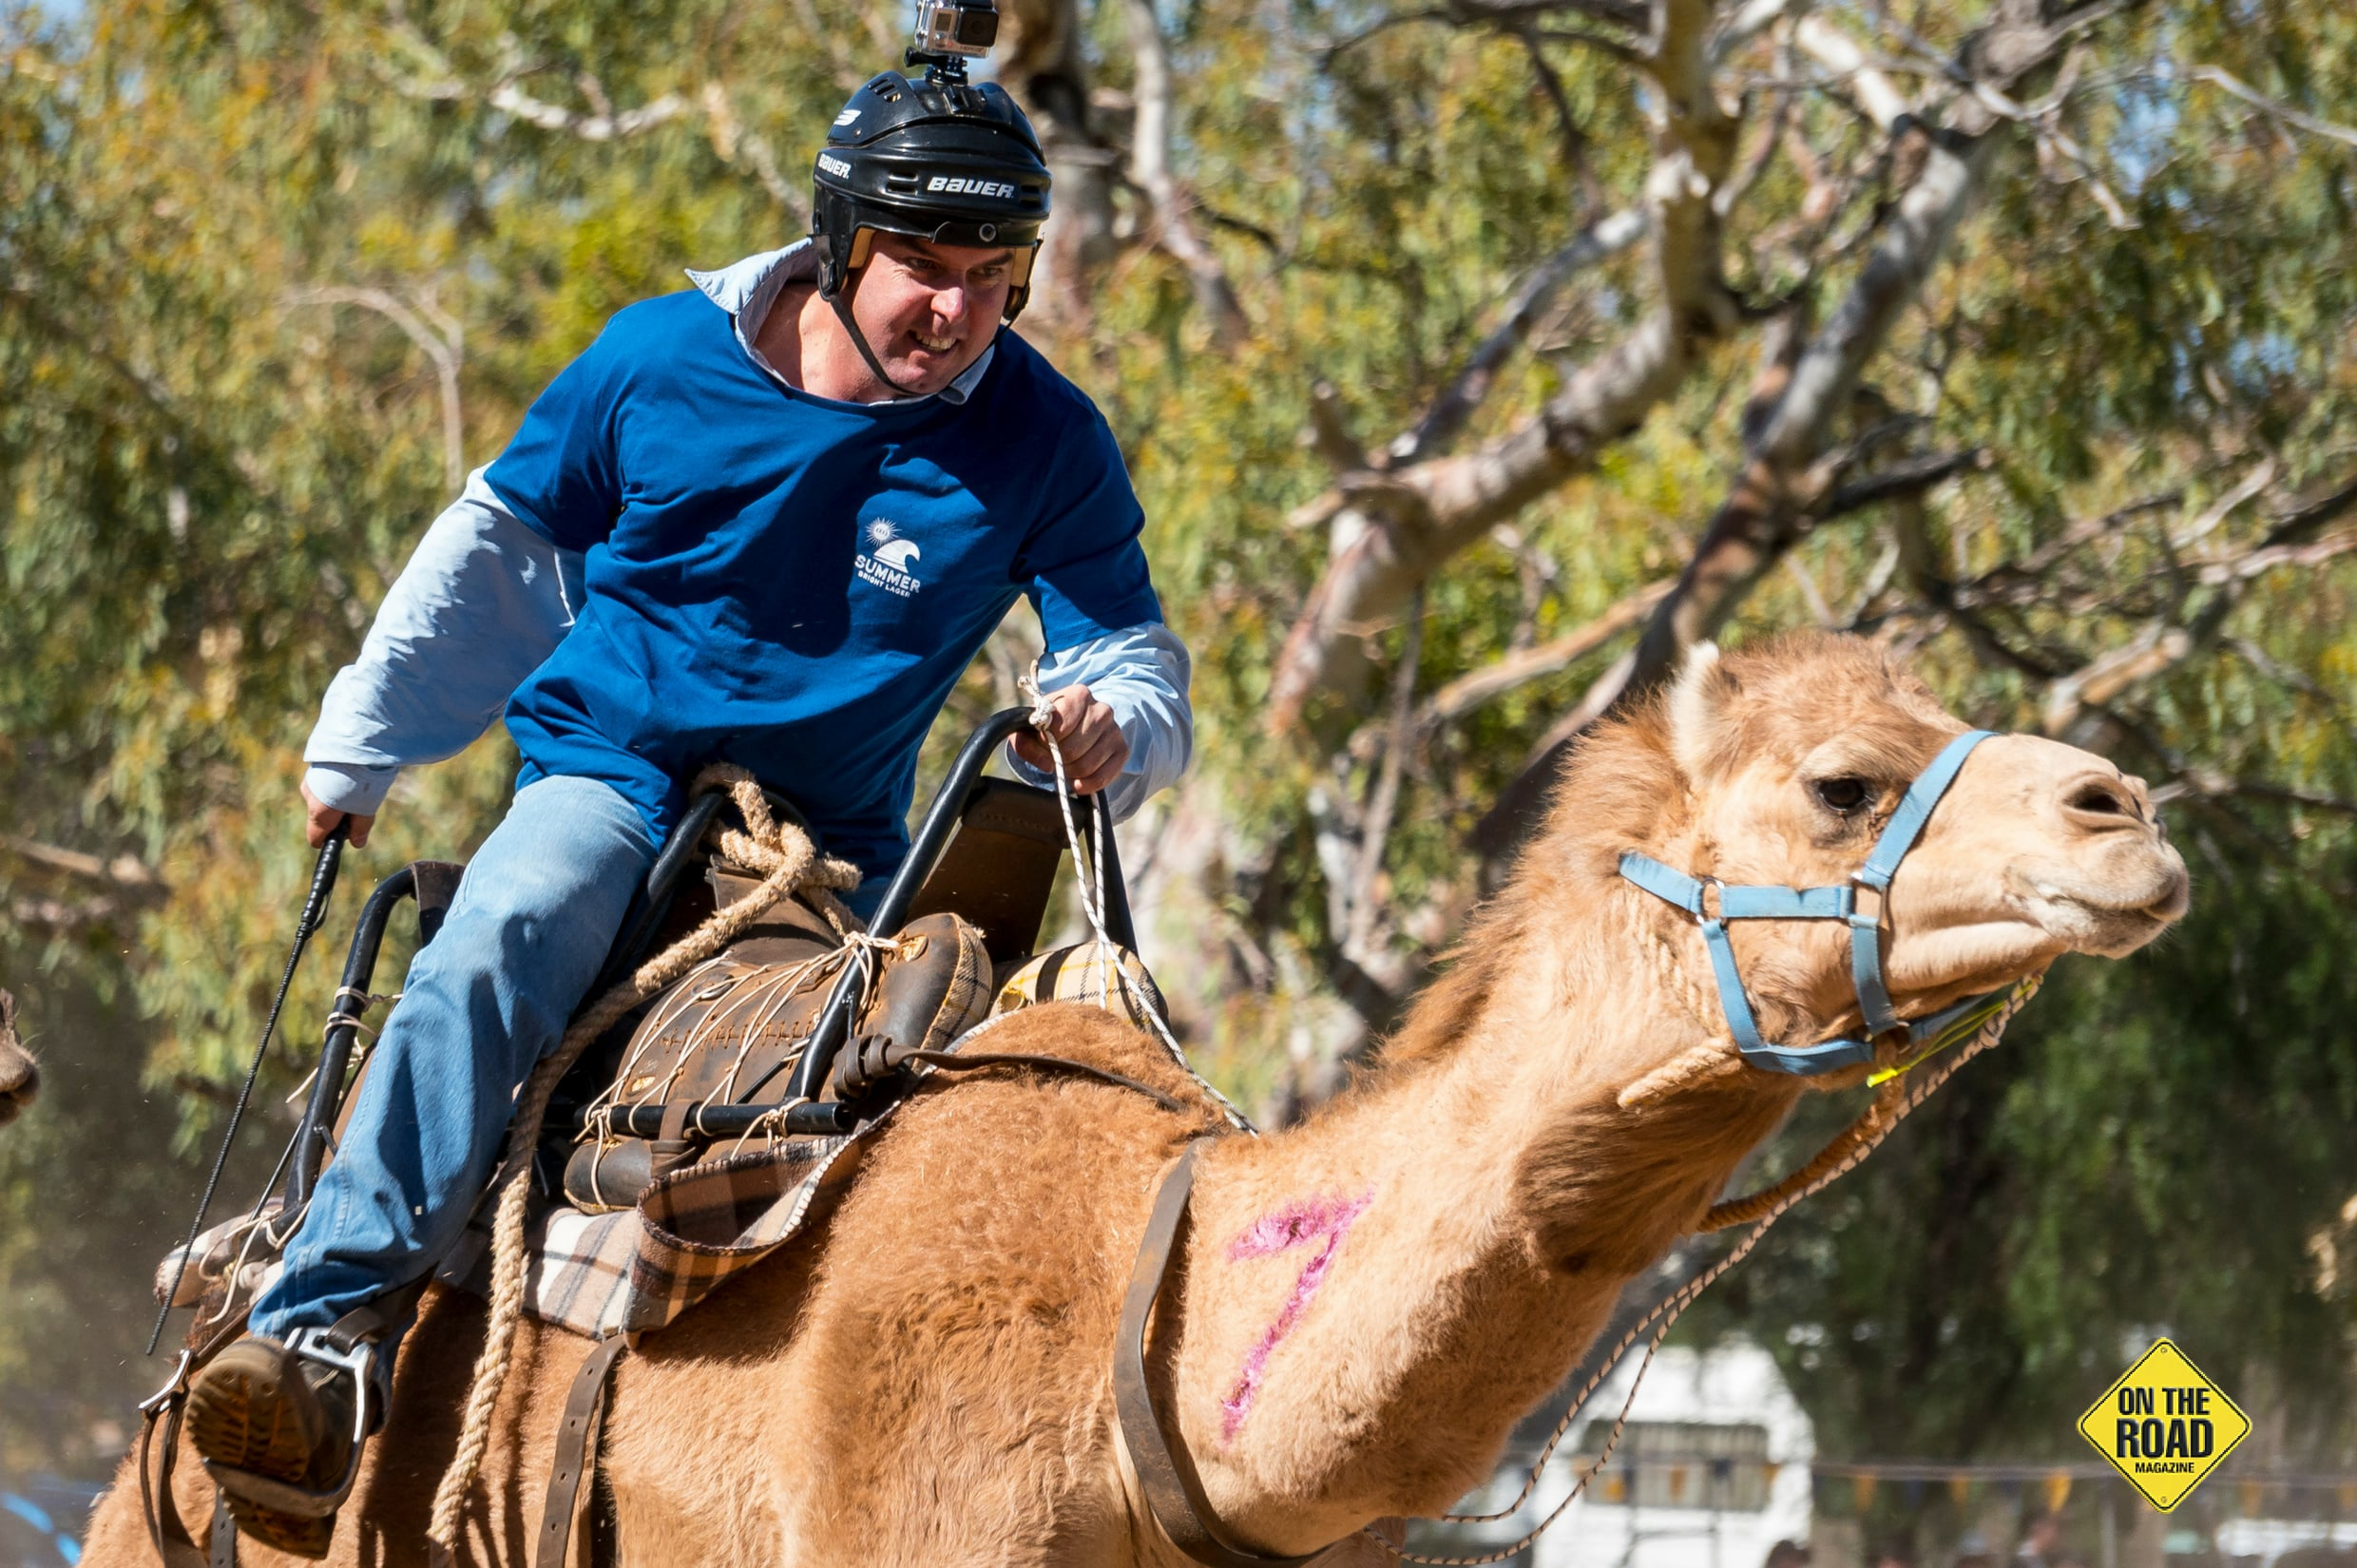 For Alice Springs' jockeys, a win in the Camel Cup brings prestige to their camel operations